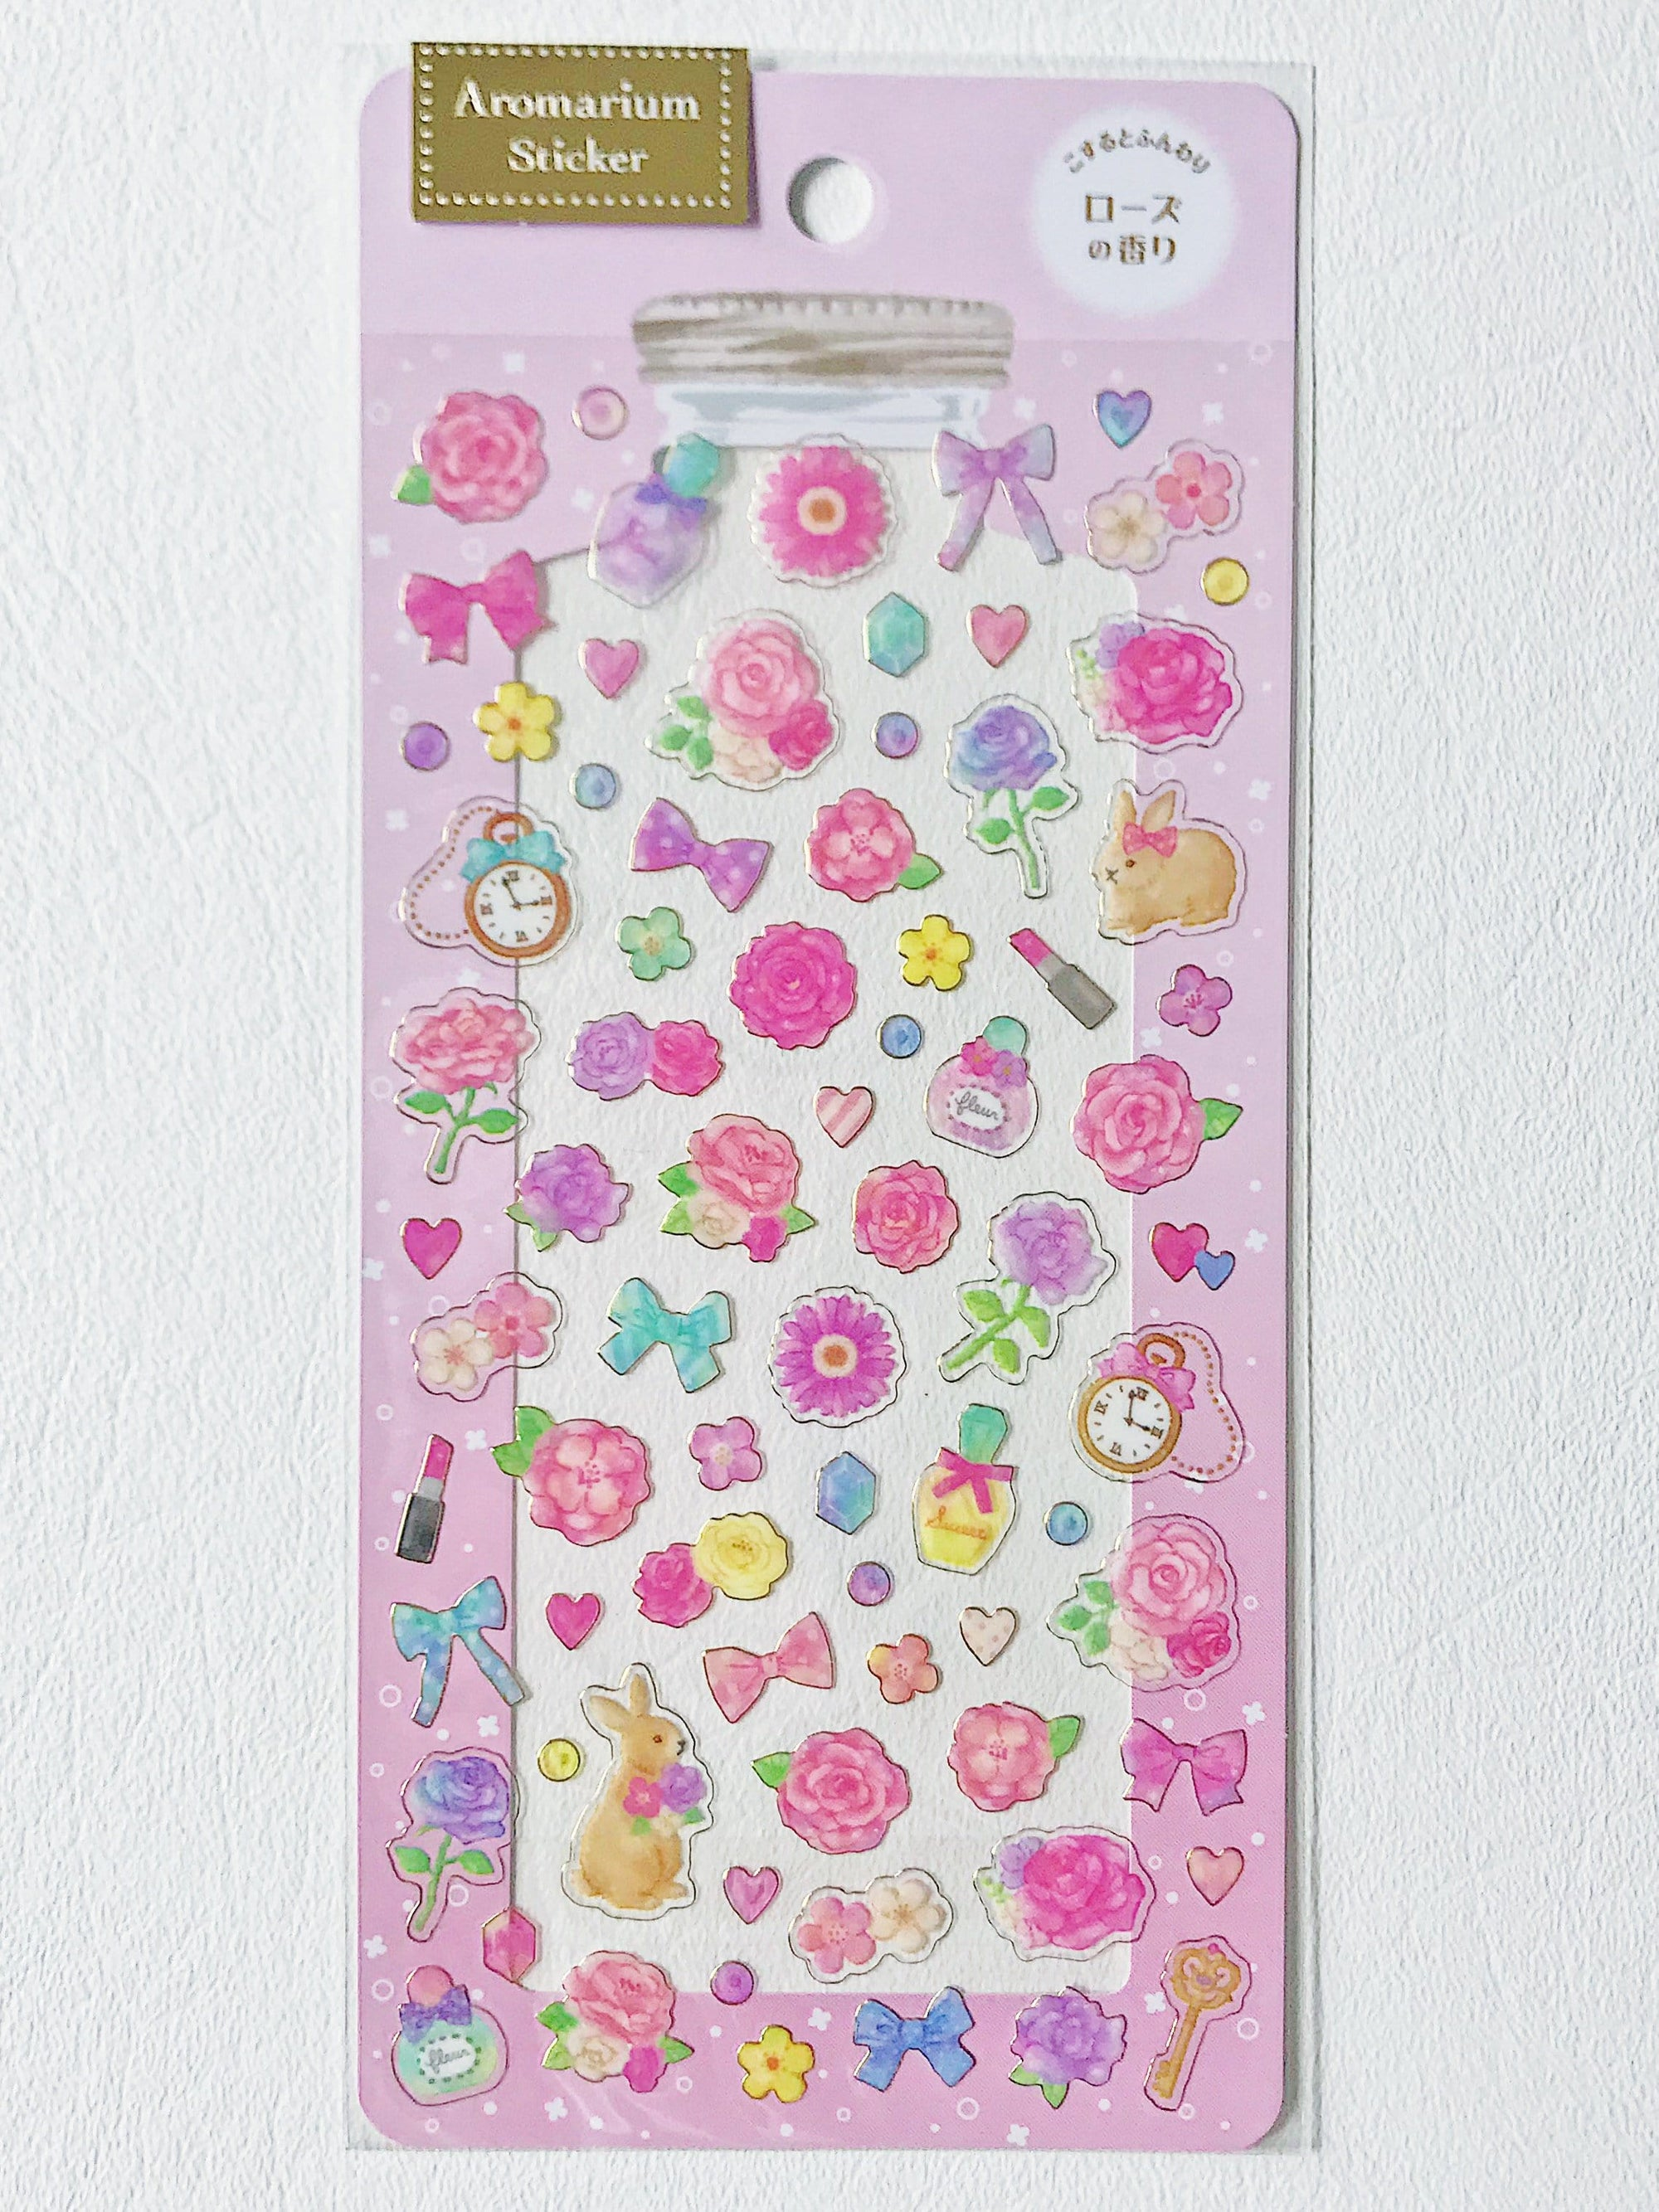 Scented Aromarium Clear Stickers- Romantic Roses Theme, Rose Scent